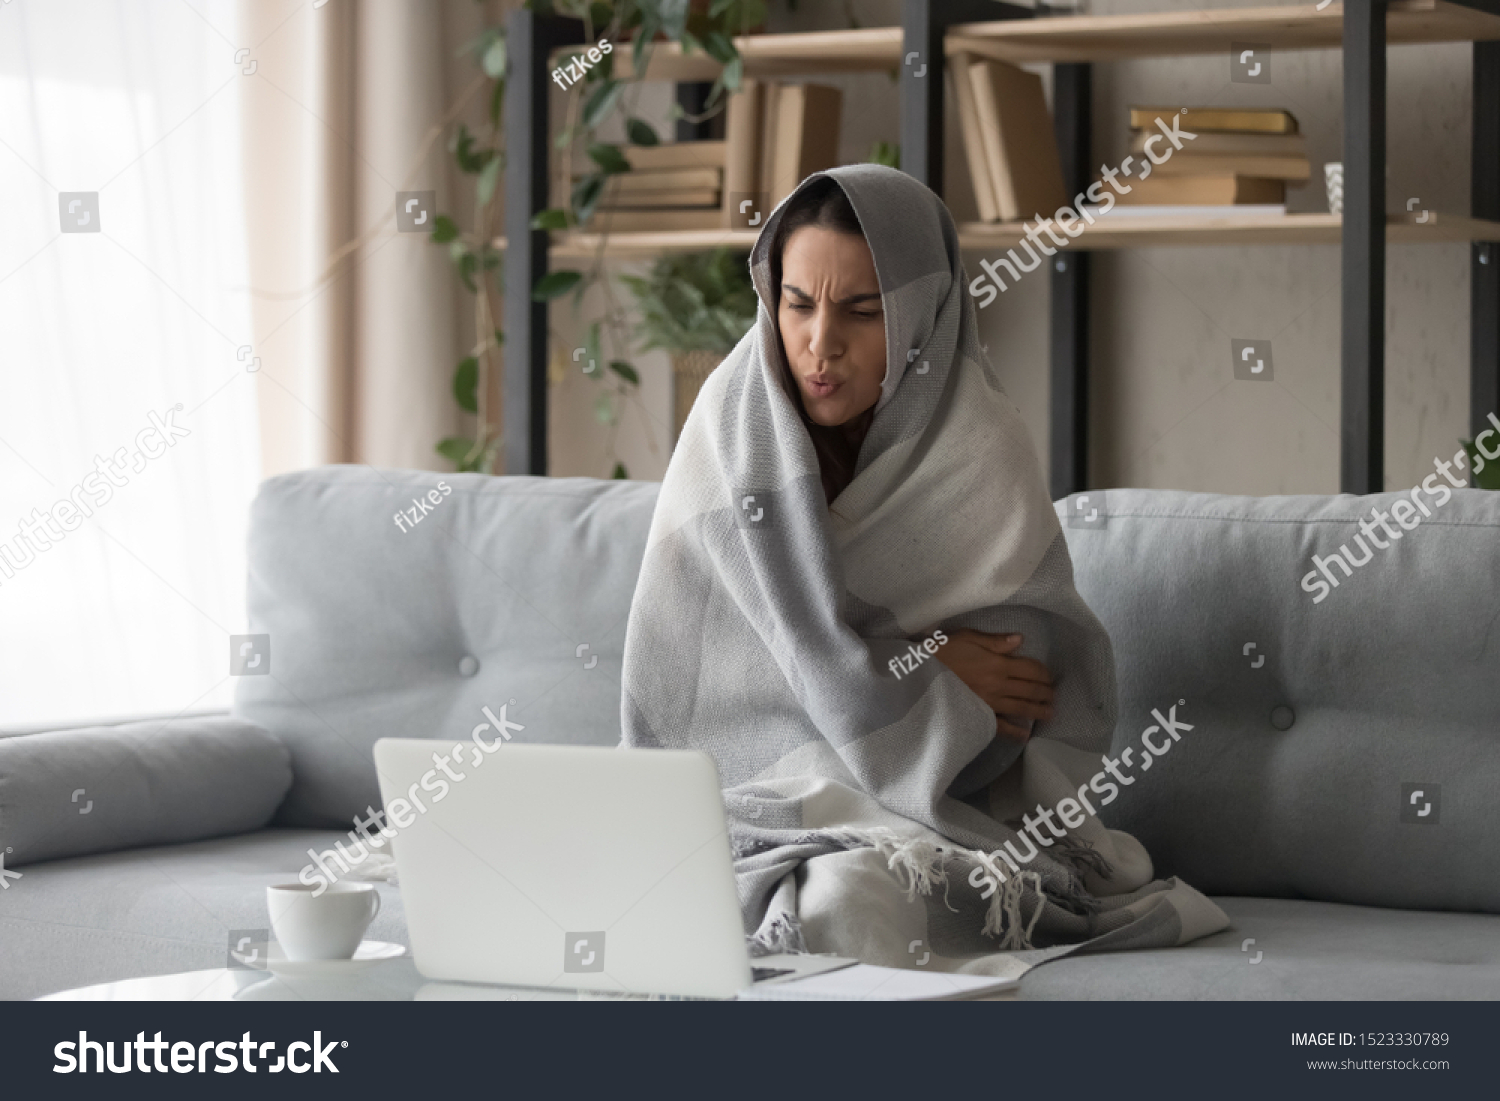 Sick ill young woman feel cold covered with blanket sit on sofa watching movie on laptop, annoyed girl shiver freezing warming at home wrapped with plaid, no central heating problem and flu concept #1523330789